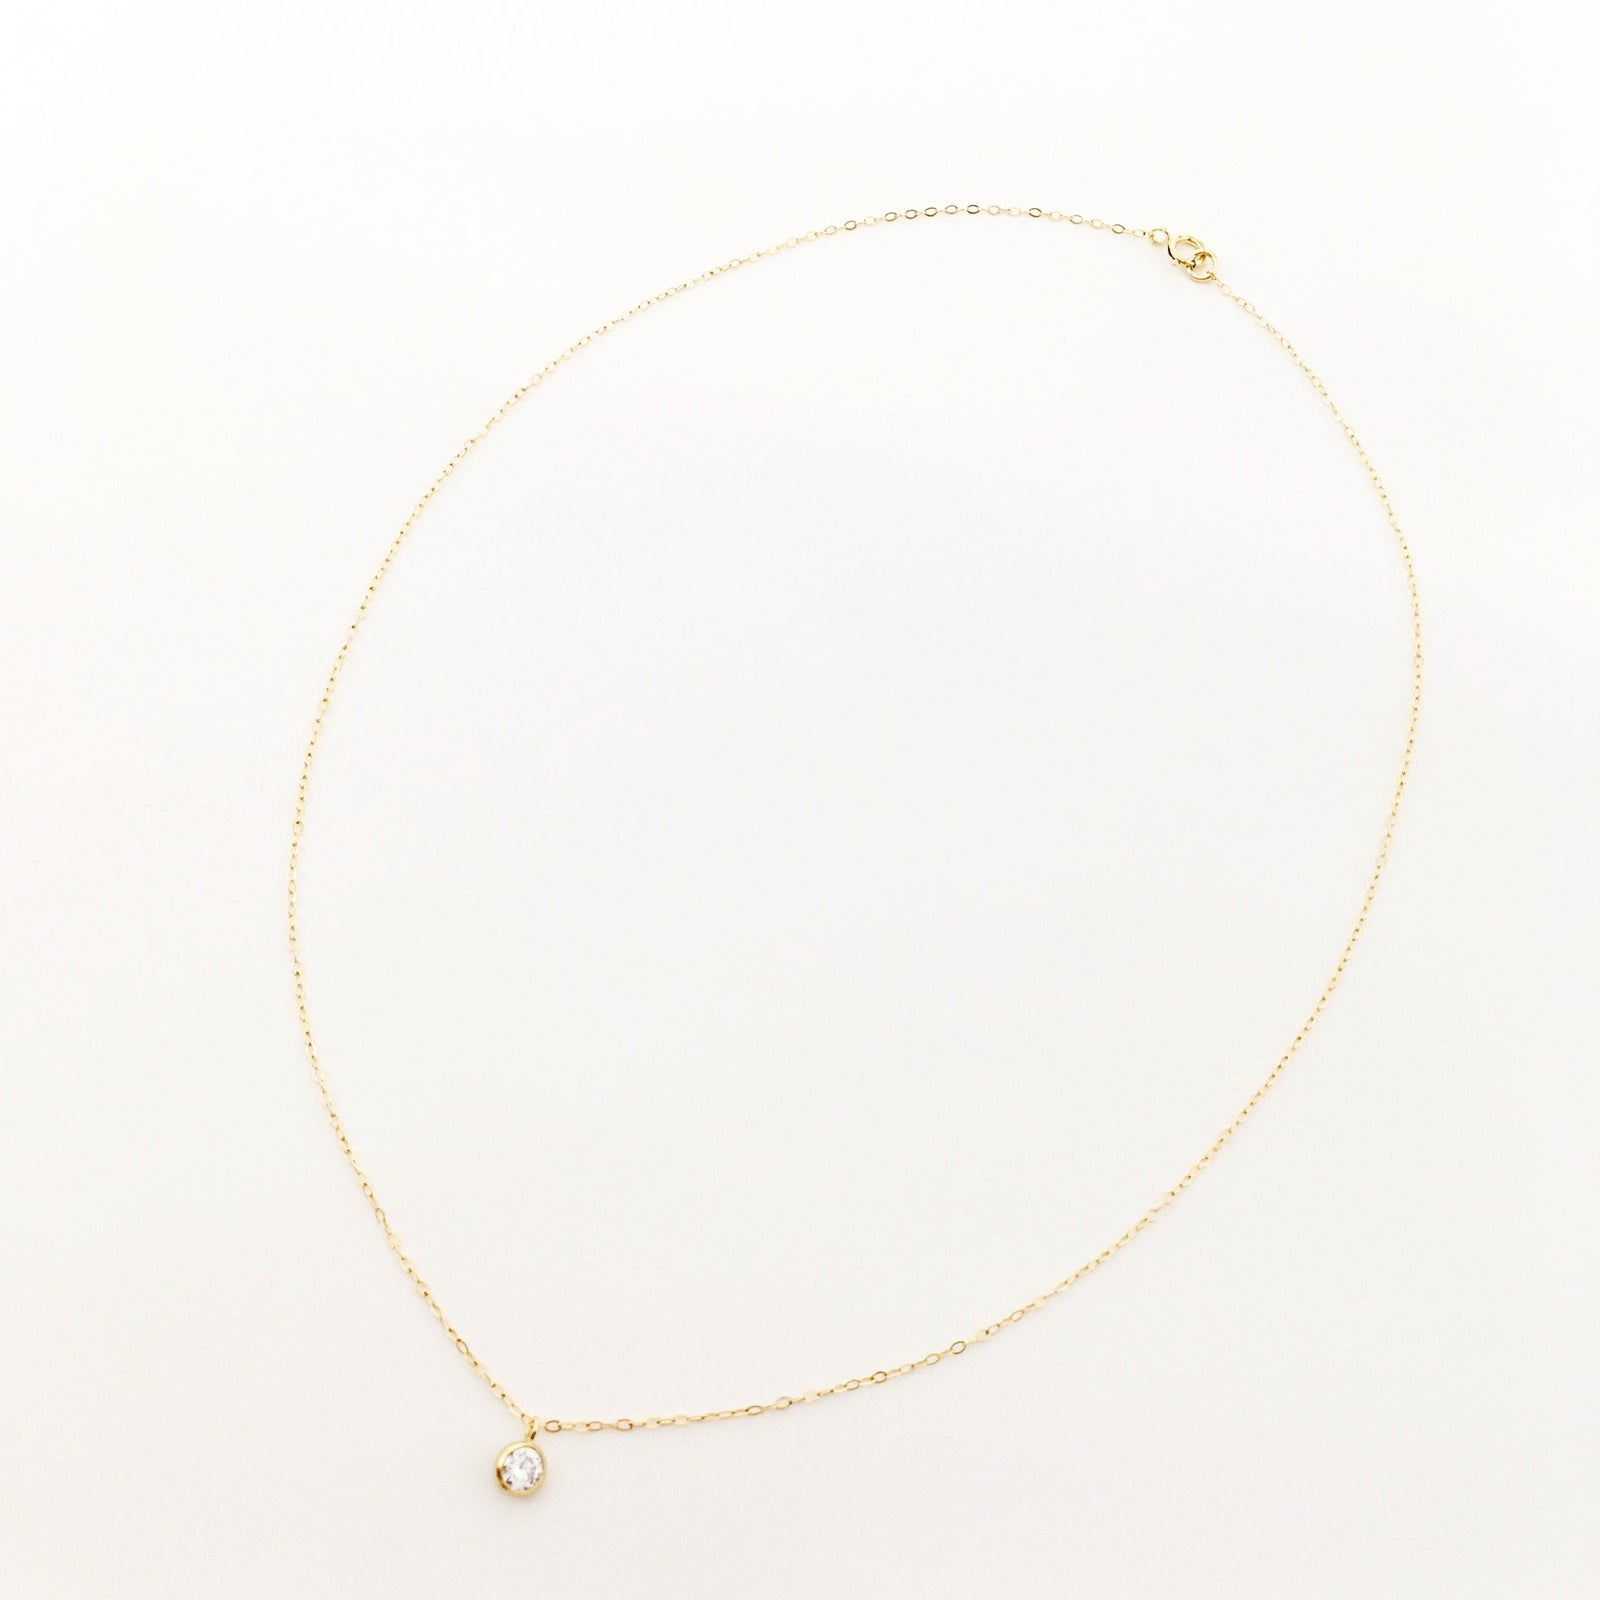 GUIDING LIGHT RHINESTONE NECKLACE | 14K GOLD-FILLED